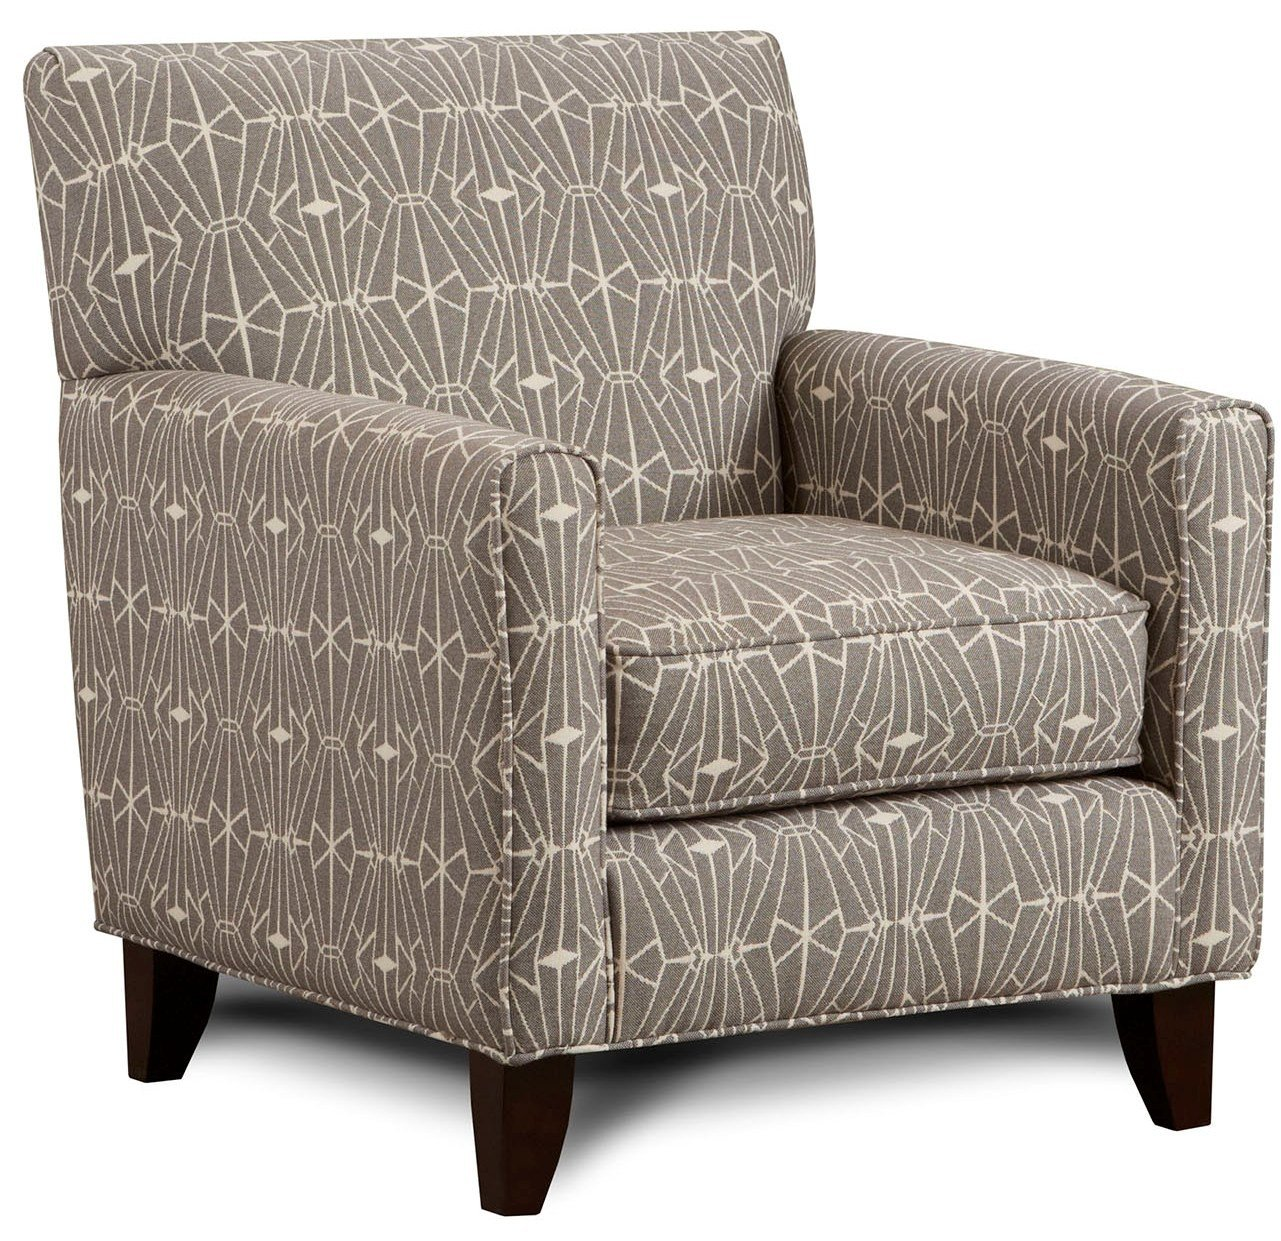 Ivory Living Room Furniture: Furniture Of America Parker Ivory Living Room Set